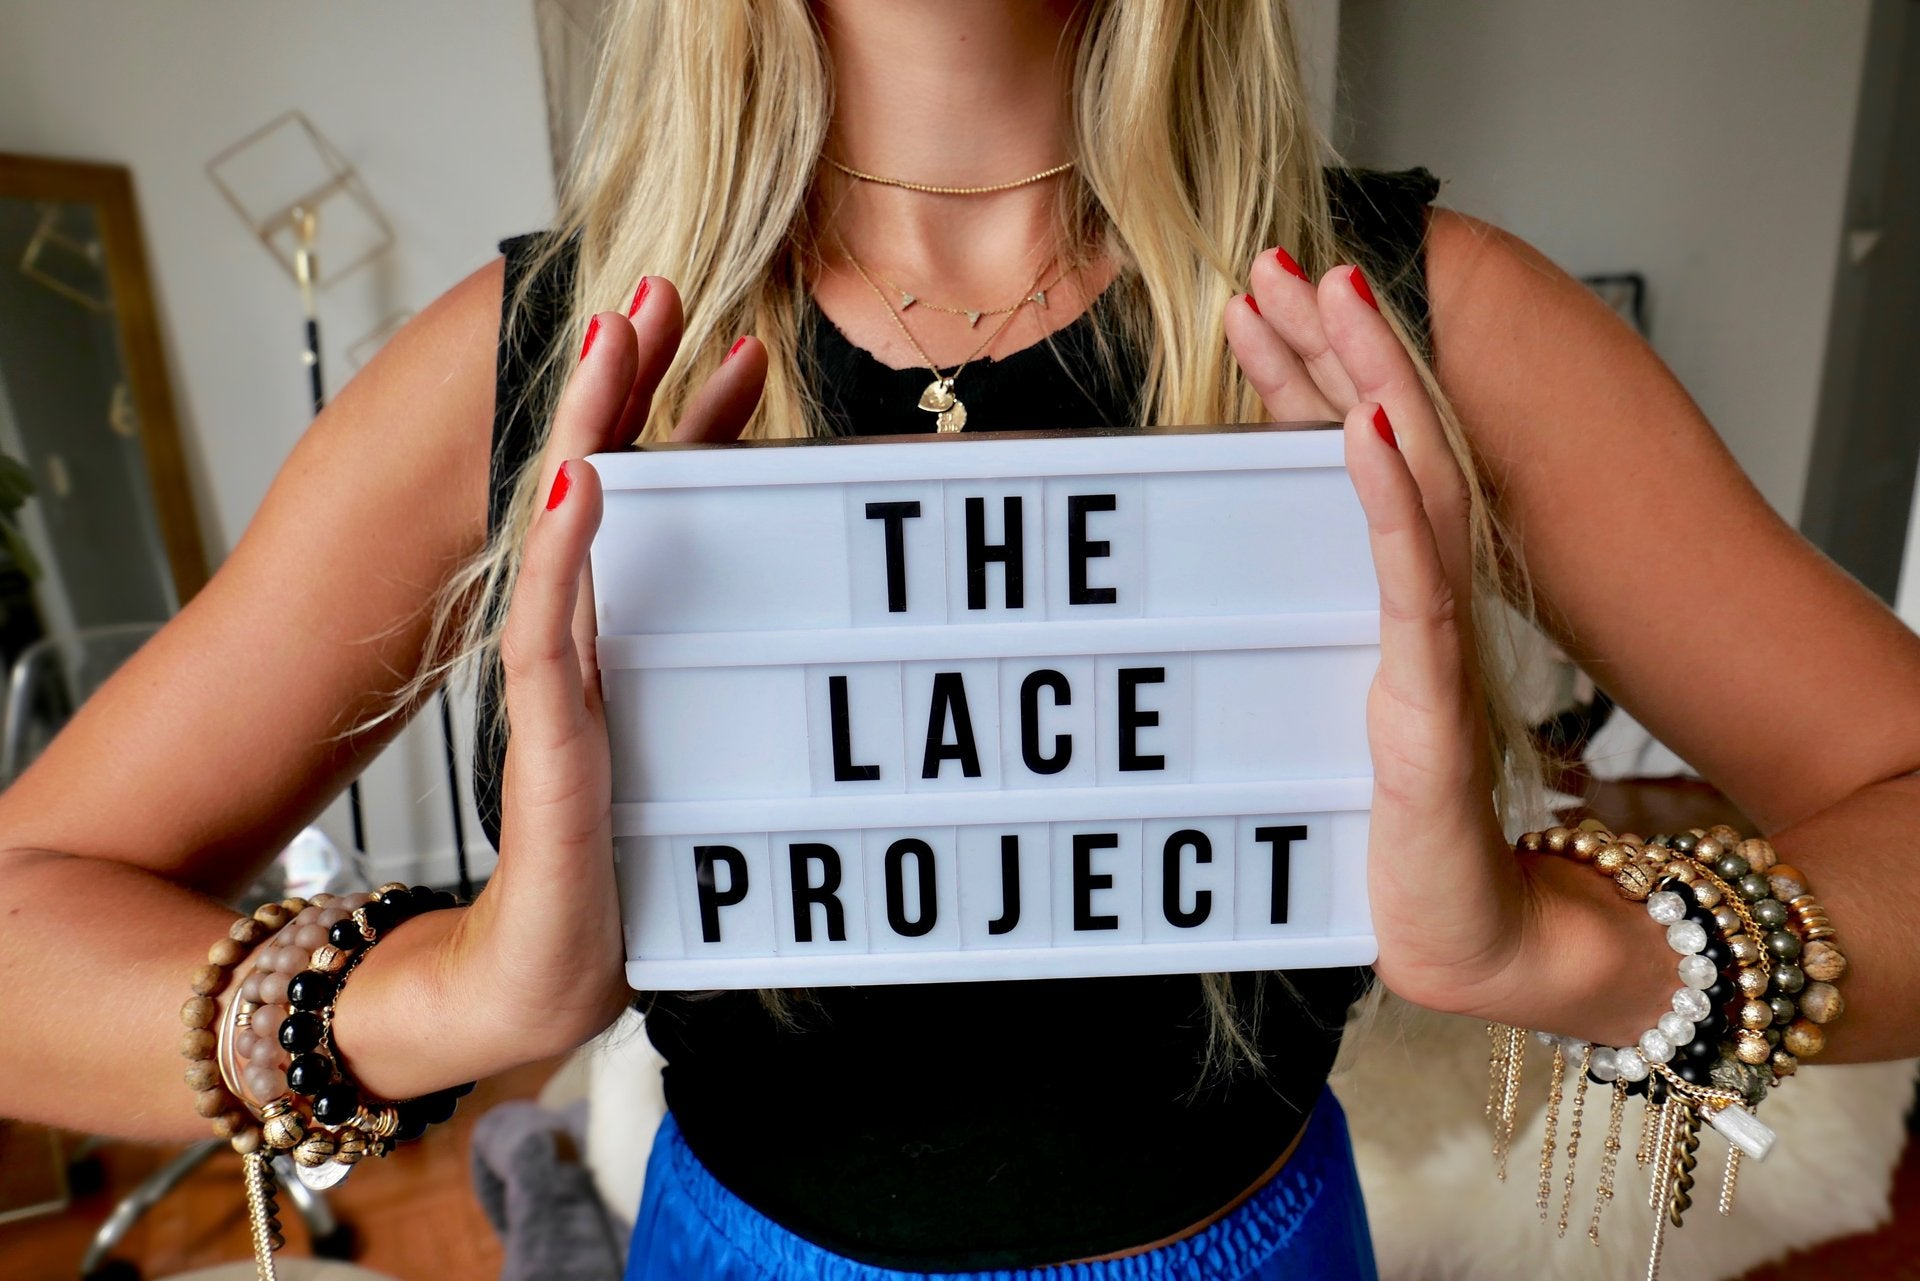 The Lace Project